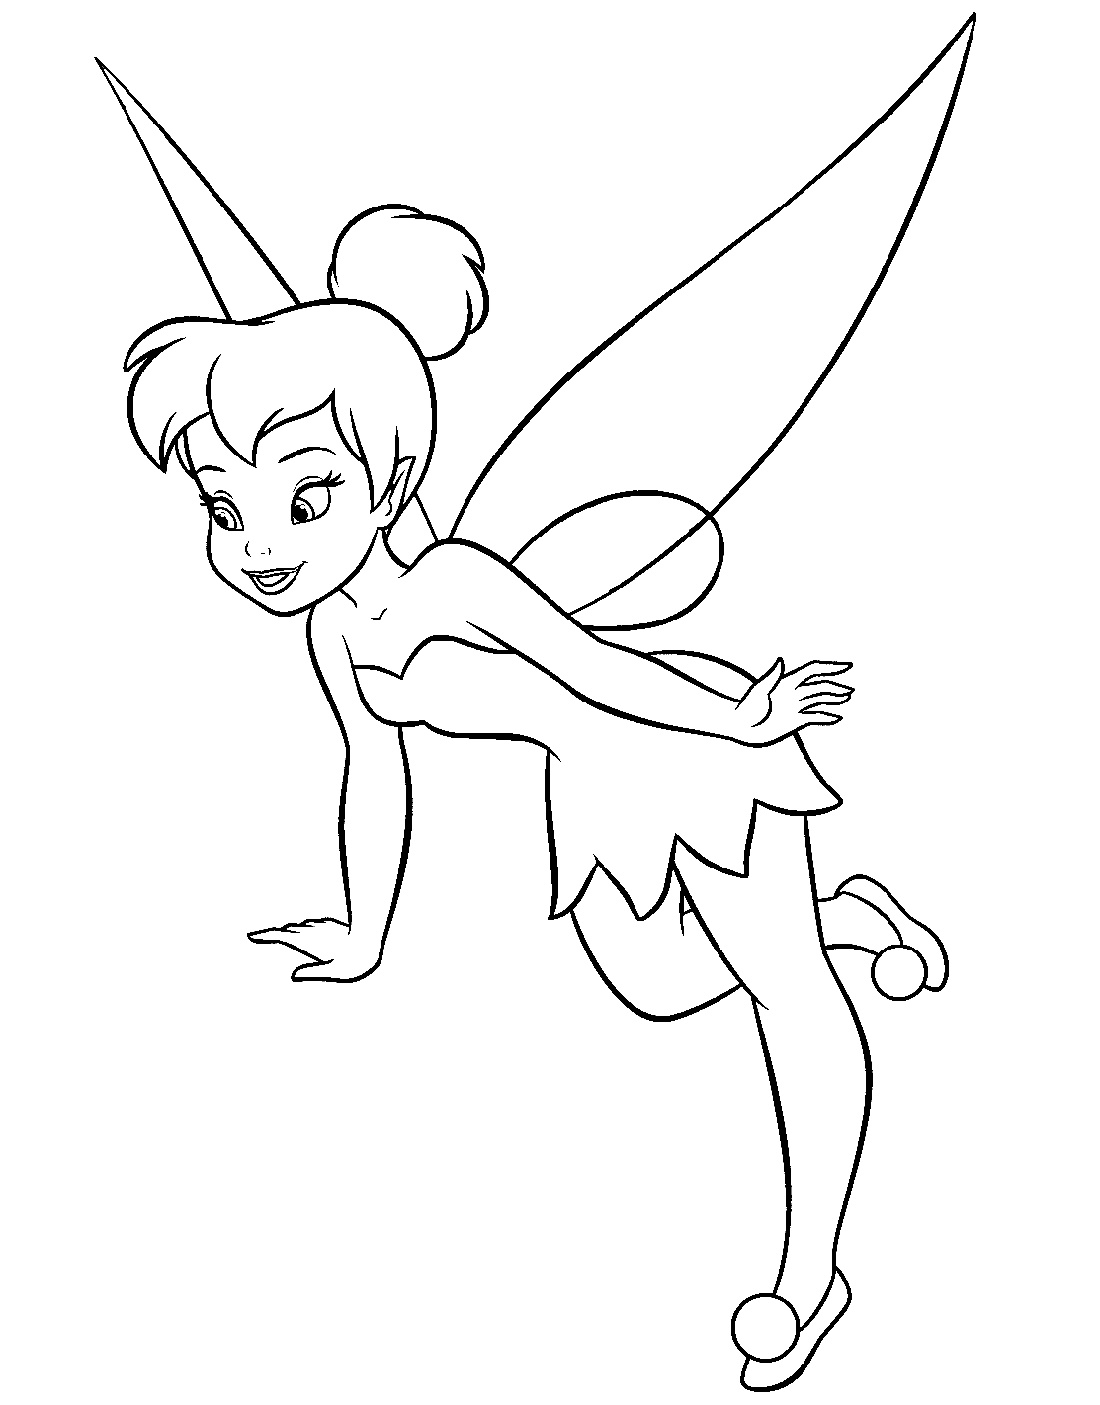 coloring tinkerbell cartoon tinkerbell cartoon  google search tinkerbell coloring tinkerbell coloring cartoon